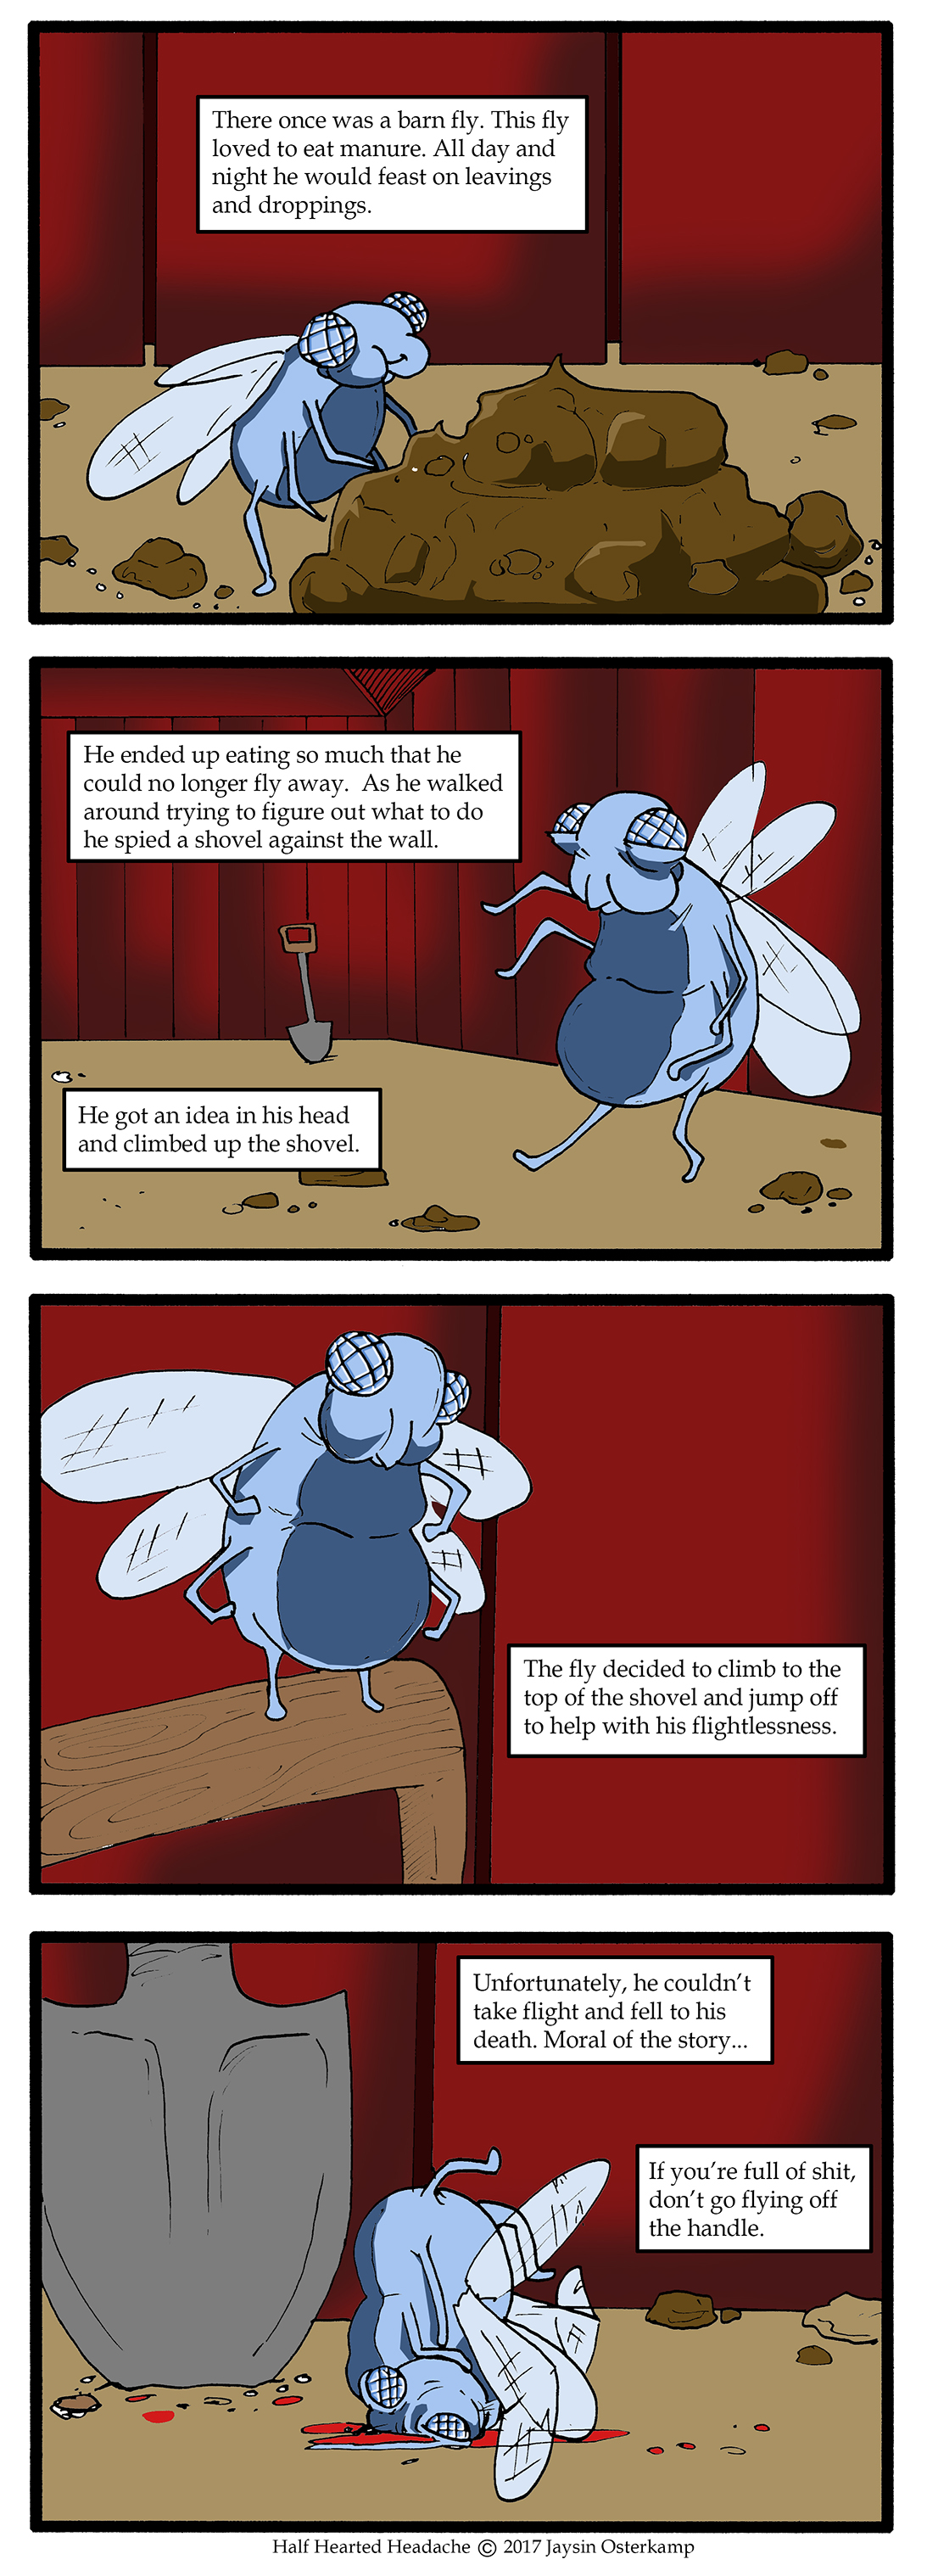 218 – Tale of the Barnfly